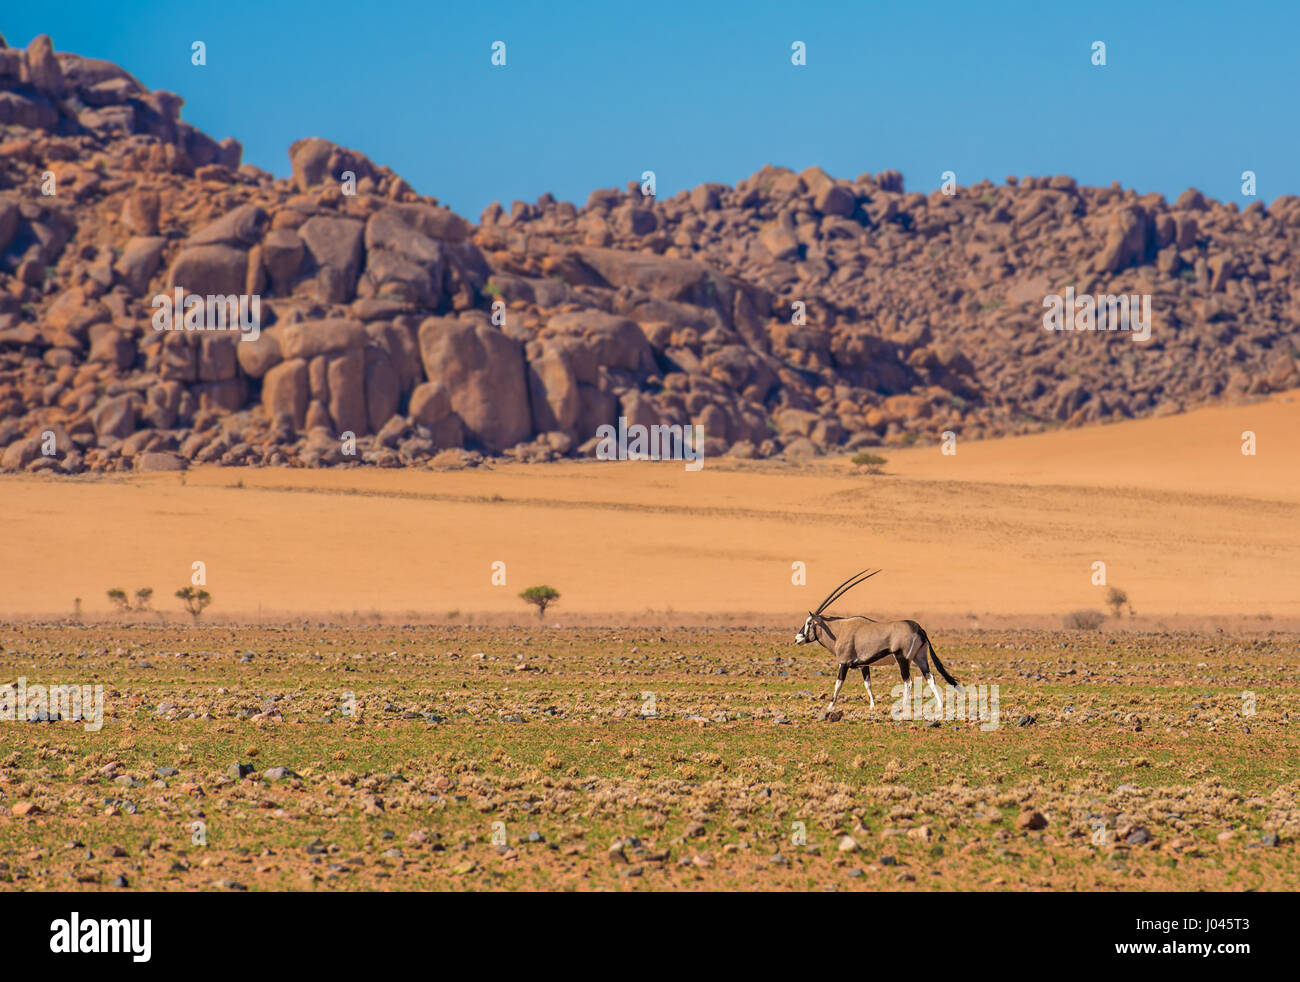 Oryx antelope in Namib-Naukluft national park, Namibia - Stock Image